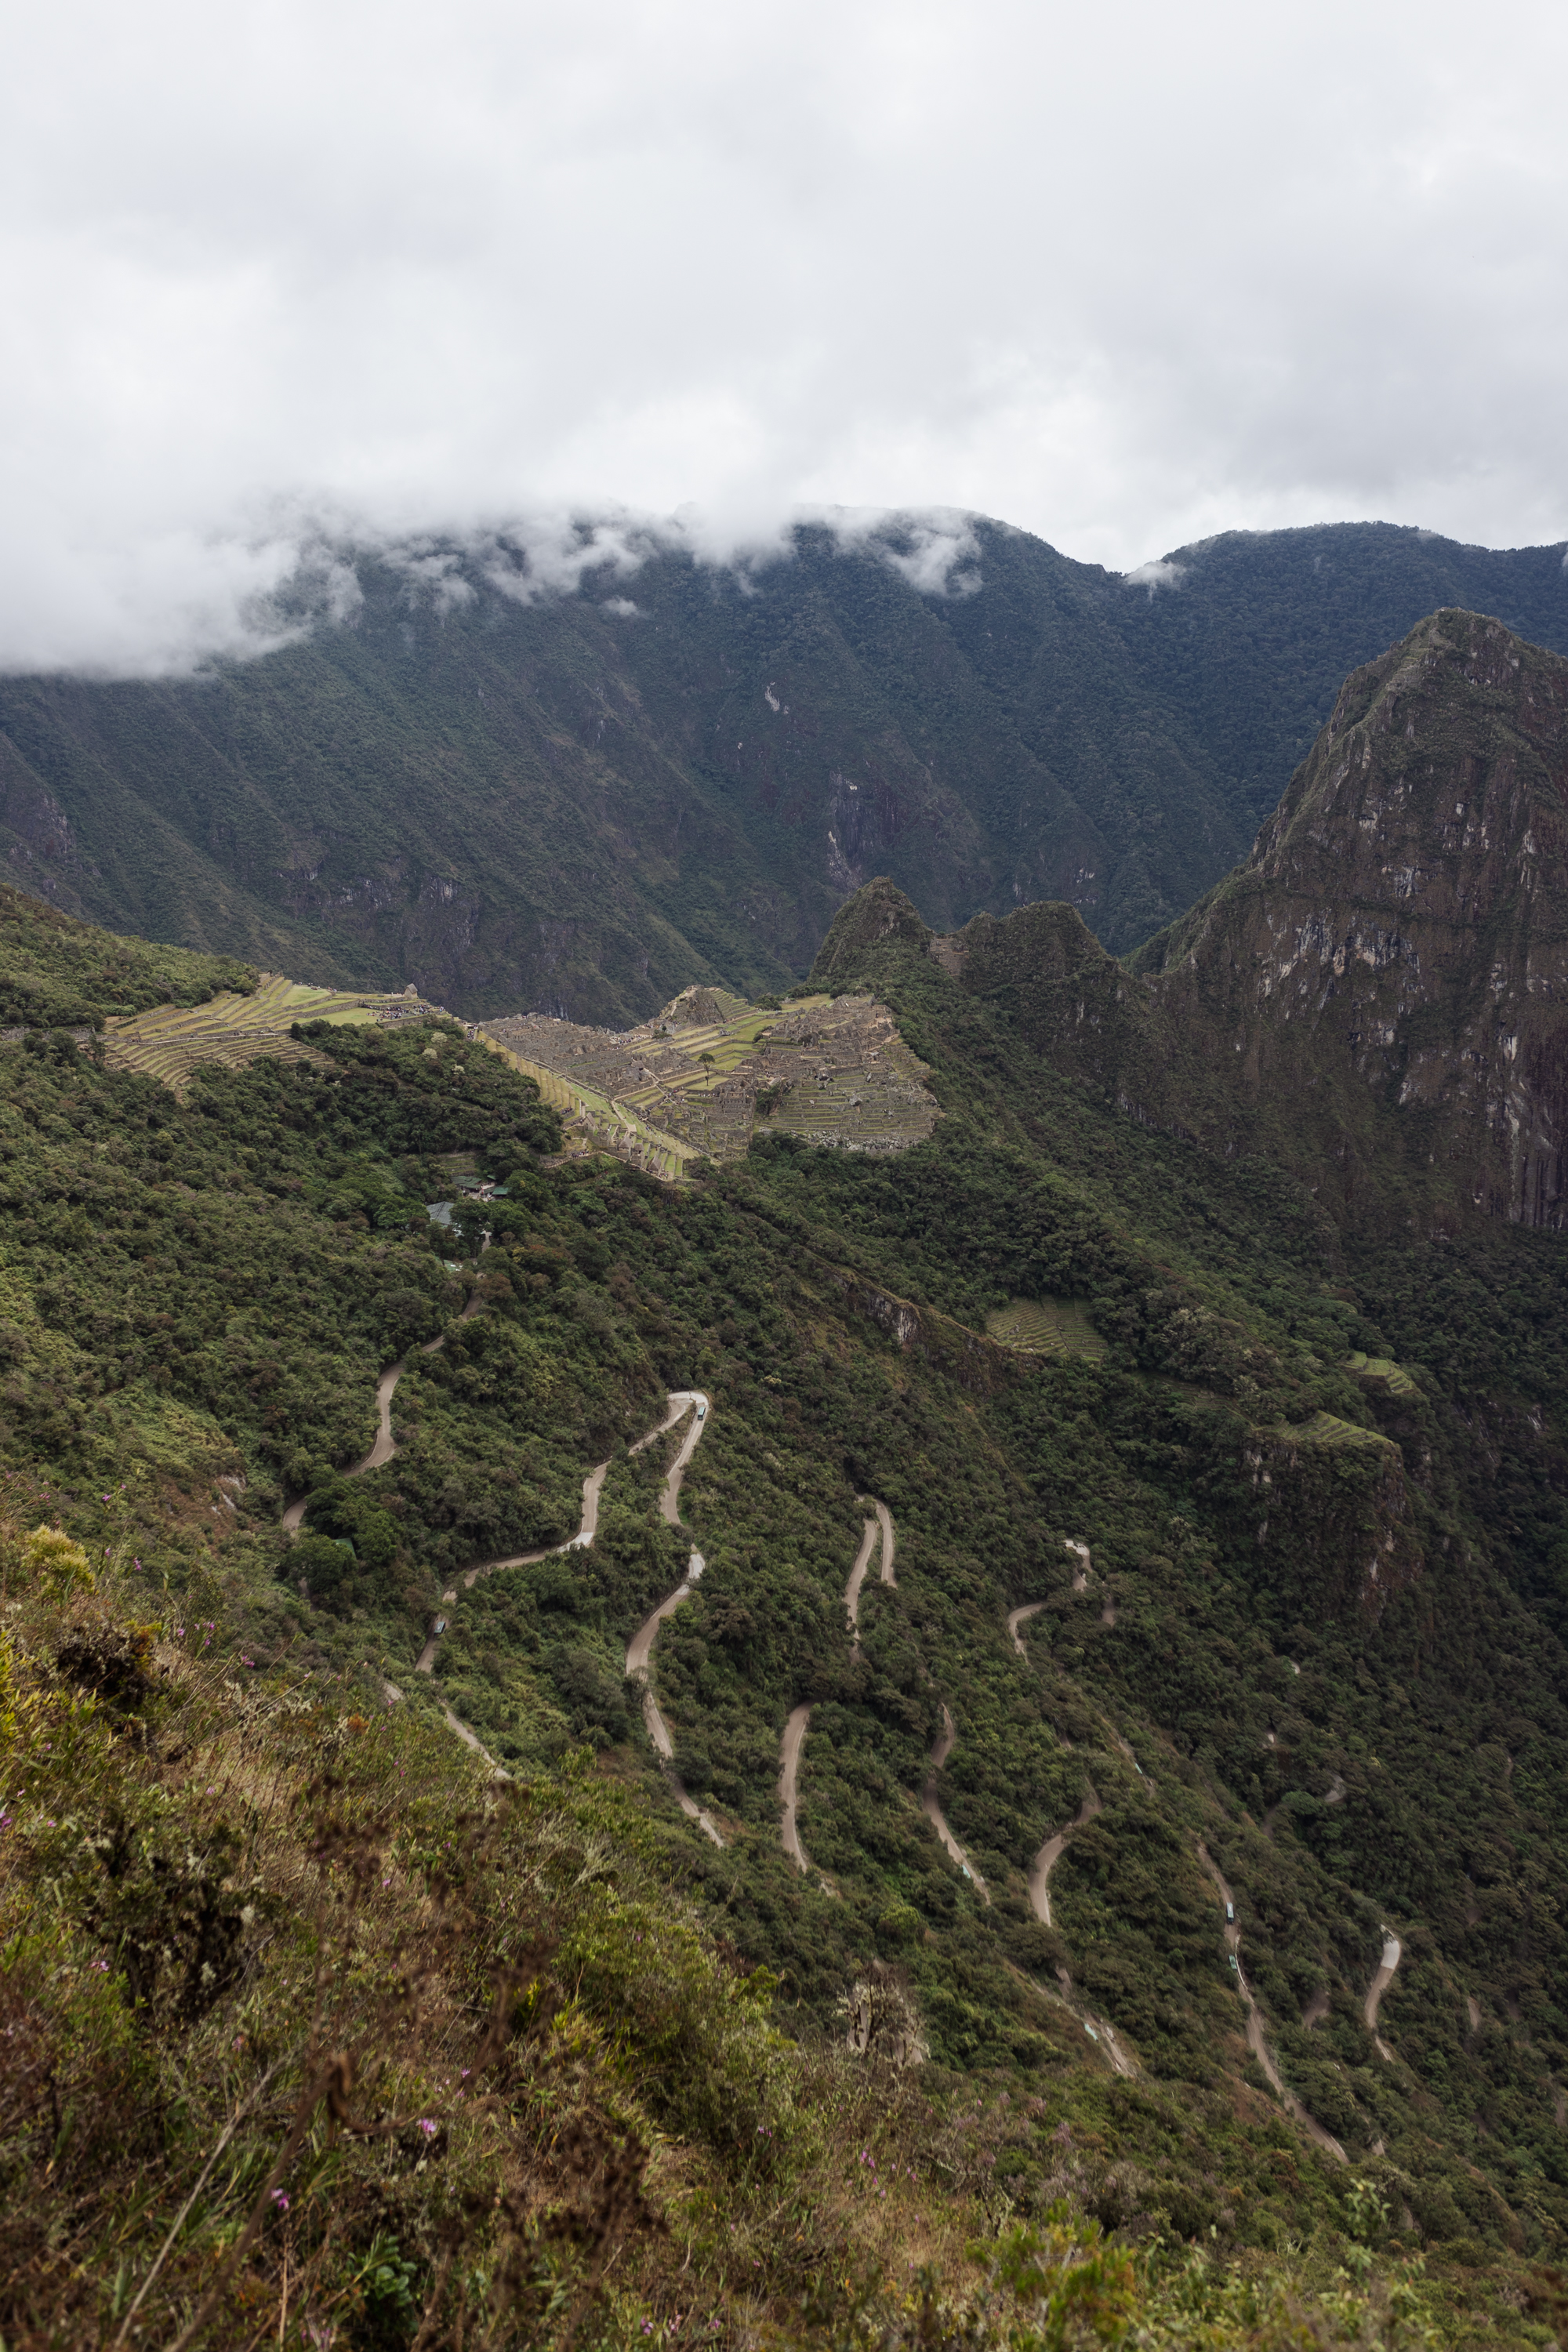 the switchbacks leading up to Machu Picchu #peru #machupicchu #sacredvalley